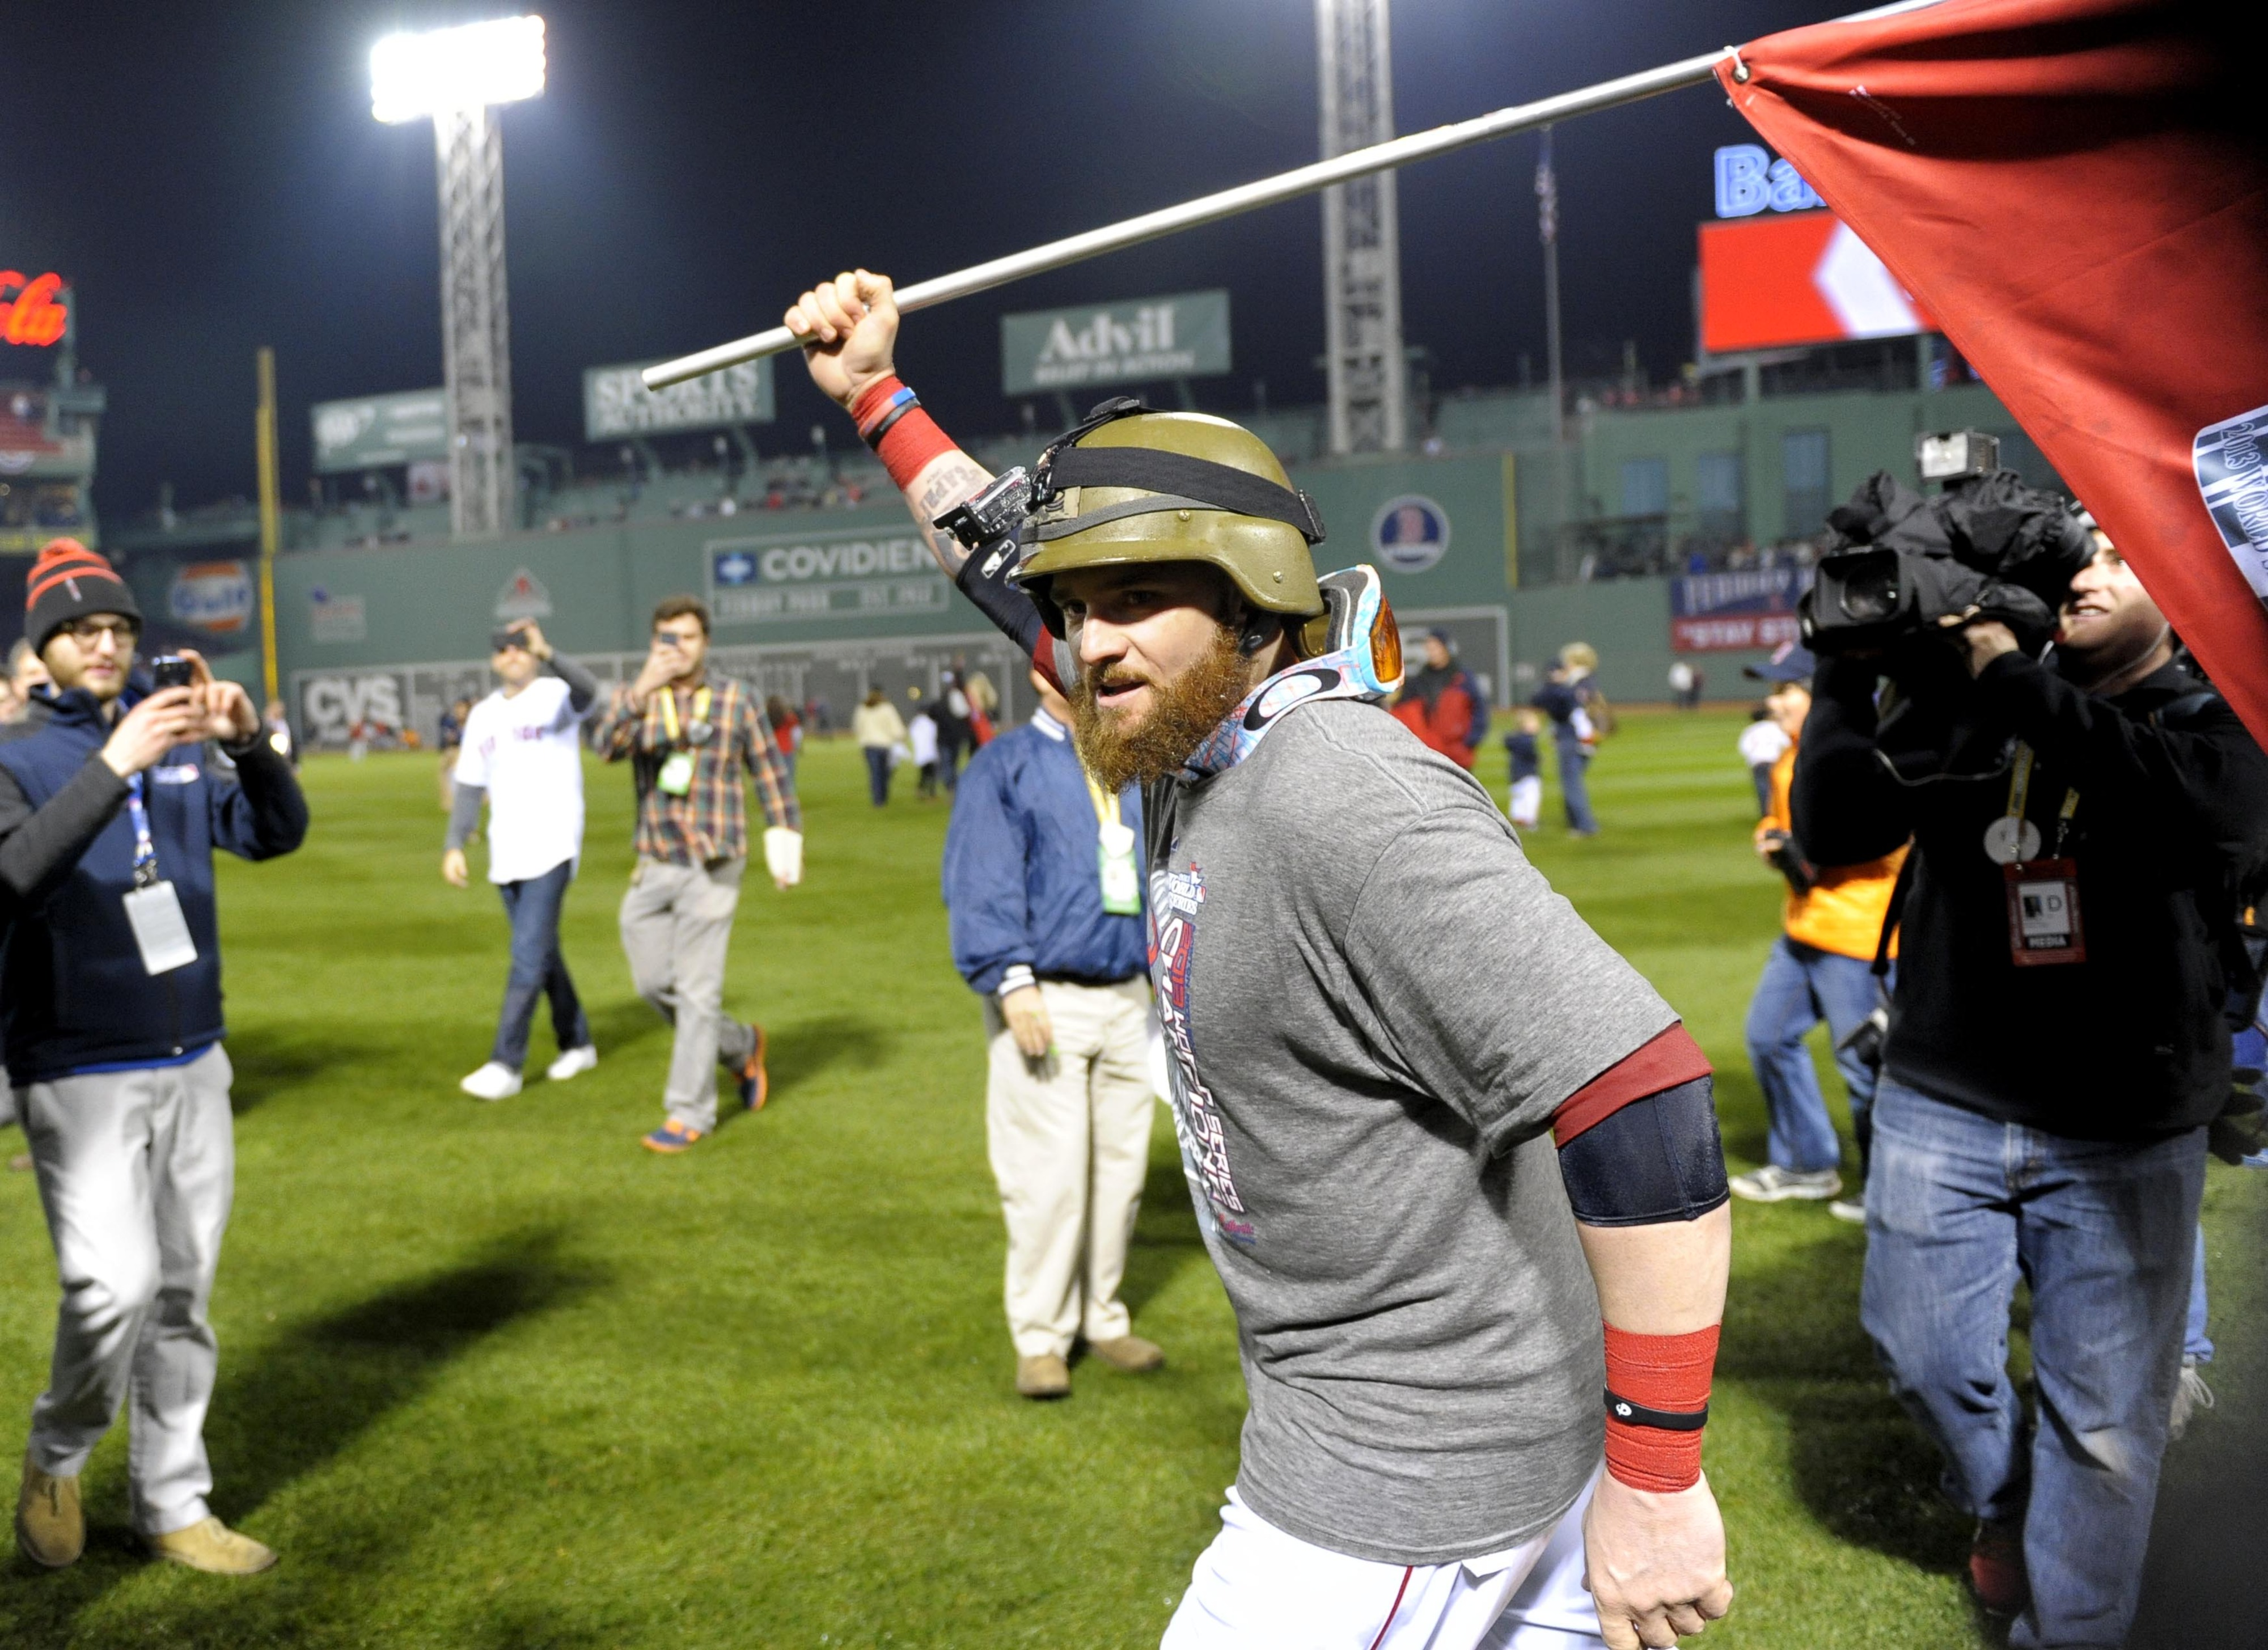 The world-champion Boston Red Sox: Getting used to getting used to it